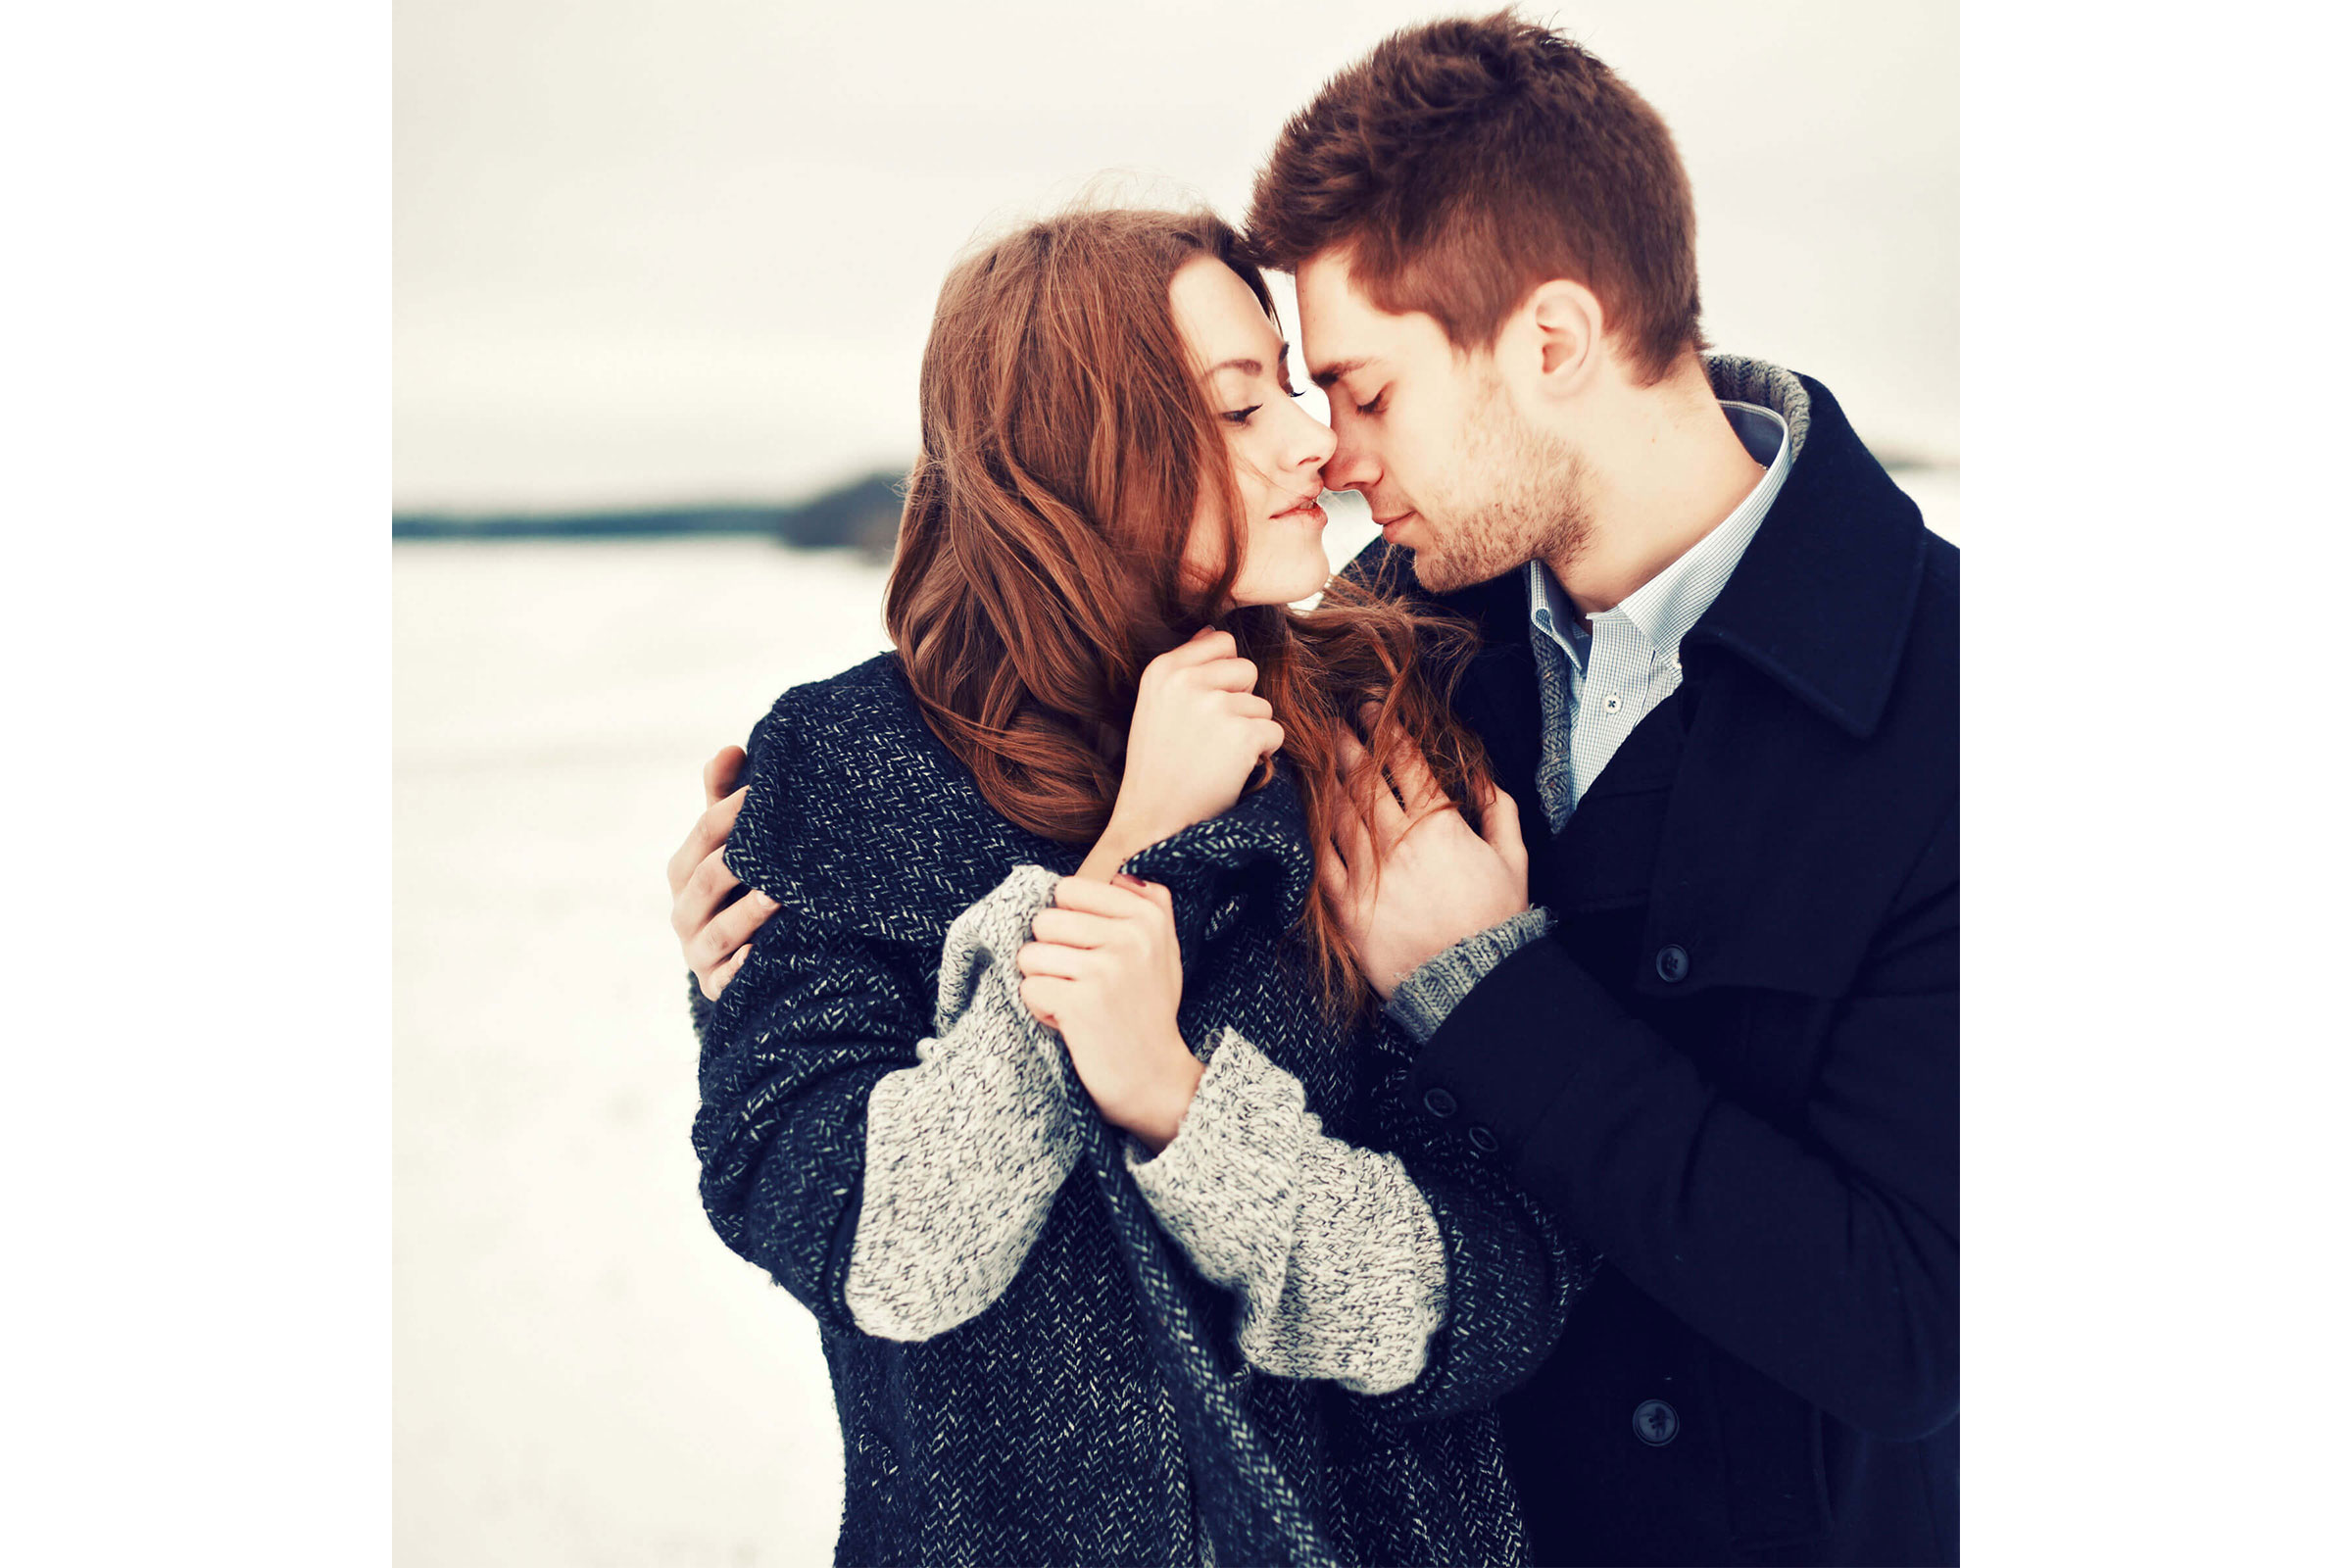 Winter-Engagement-Photos-Outfitting-for-the-Occasion-Toledo-Wedding-Guide-5.jpg